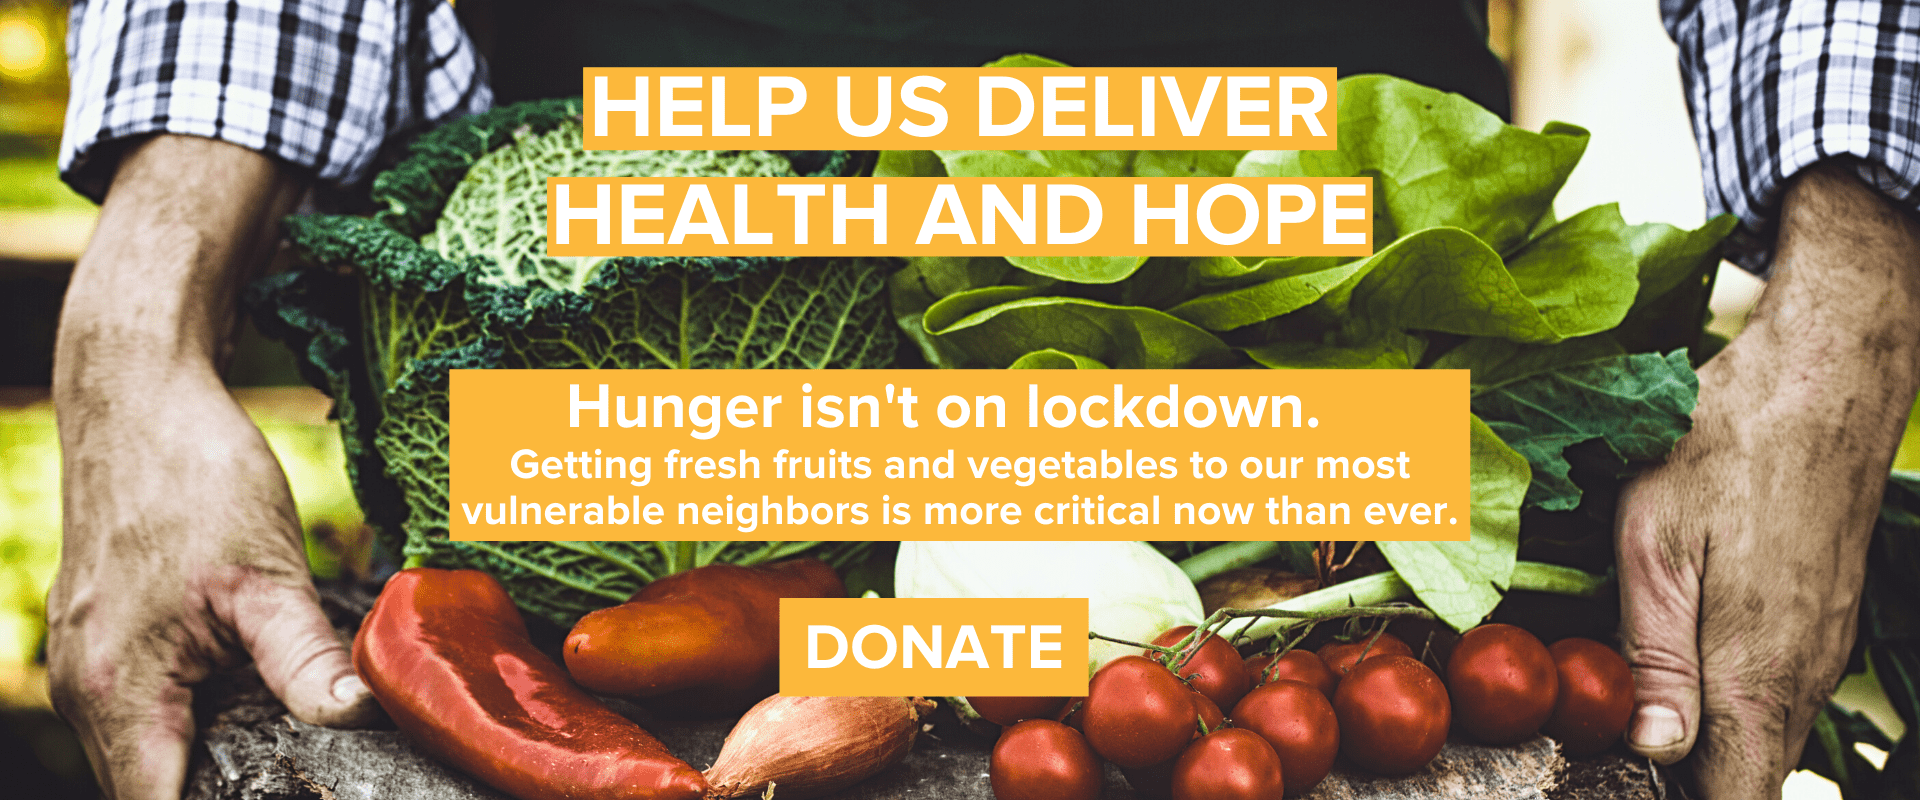 Hunger isn't on lockdown. Donate